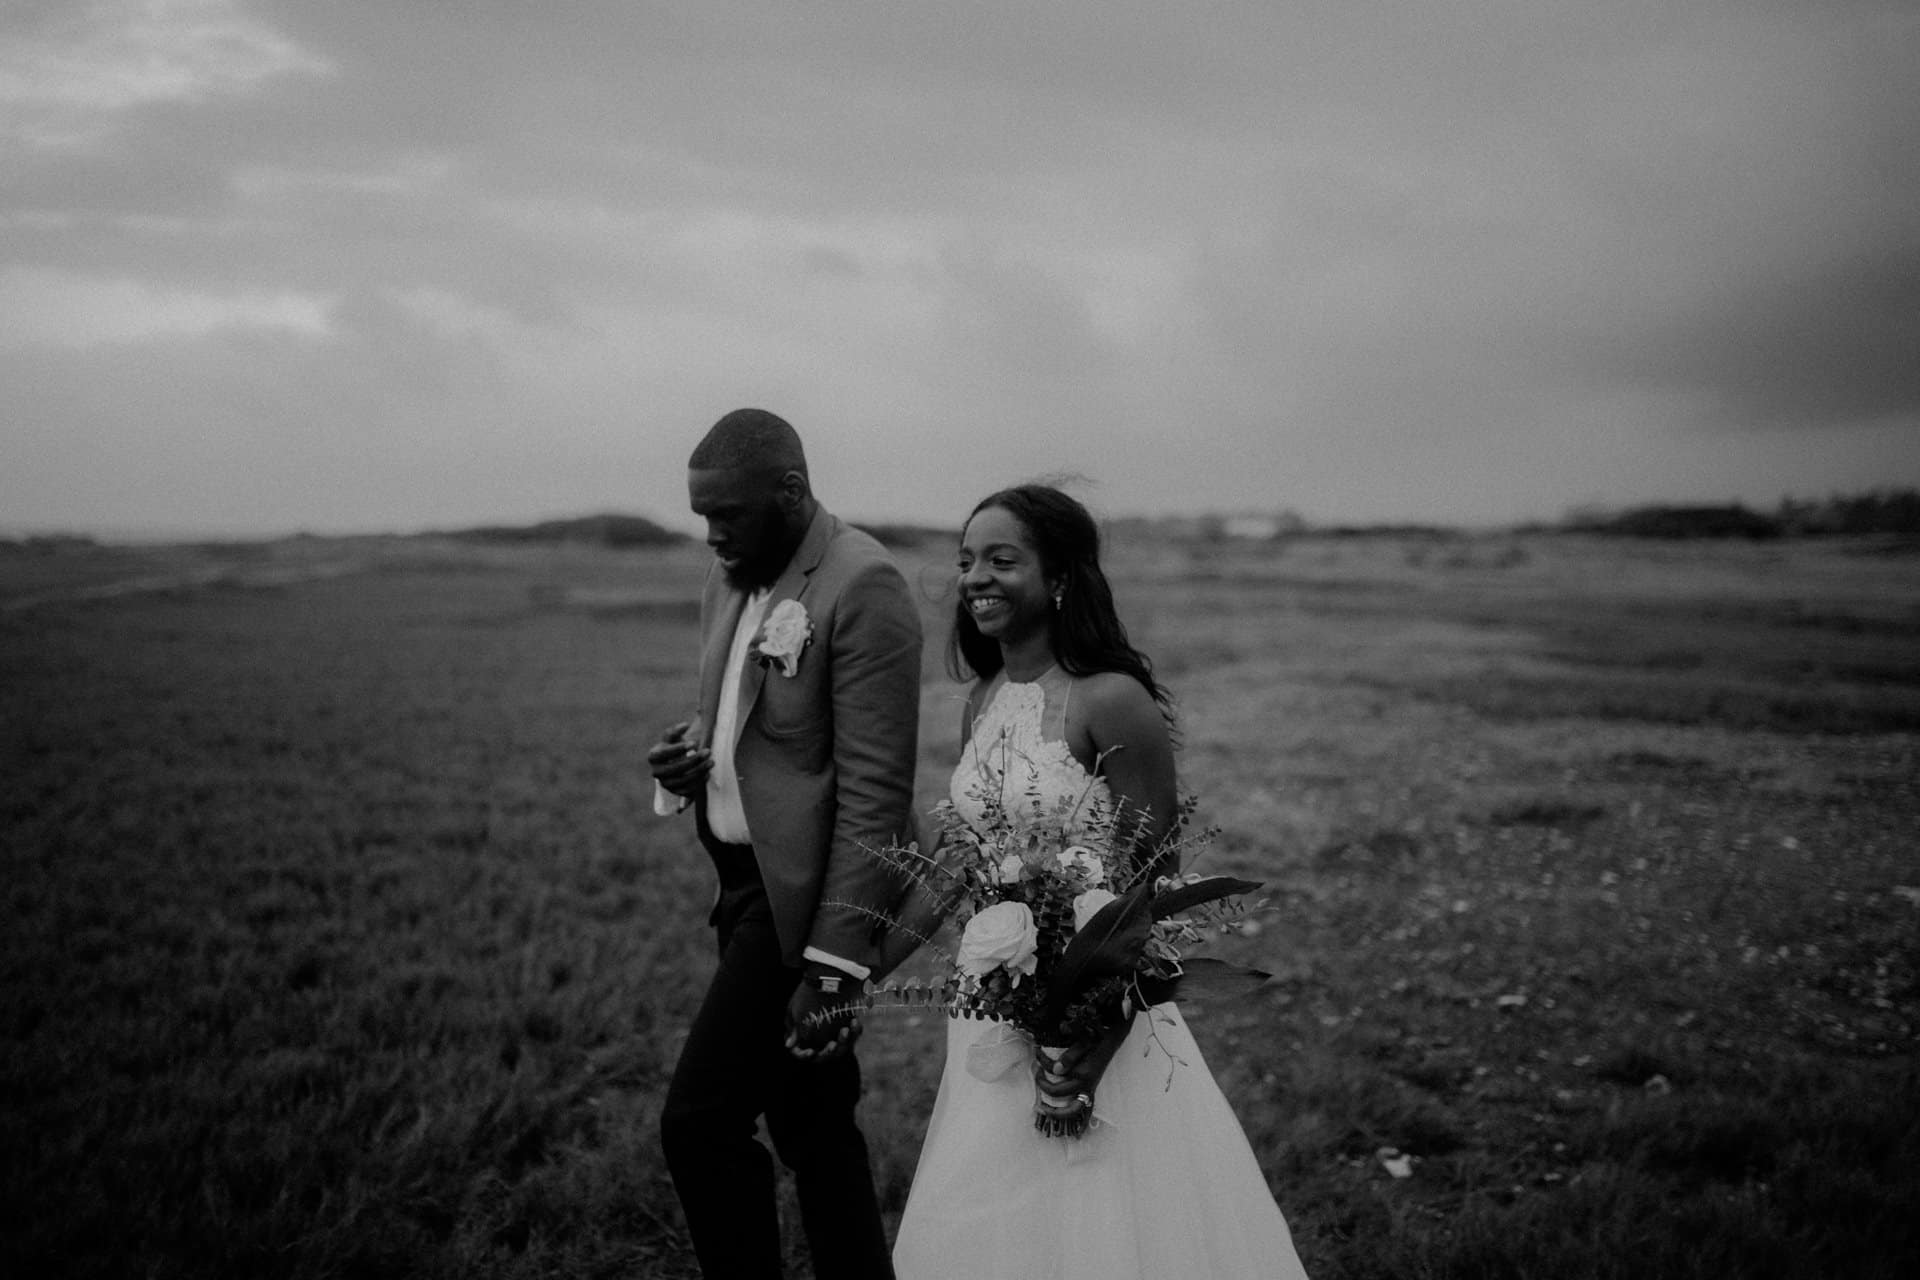 A wedding couple is walking through a meadow.